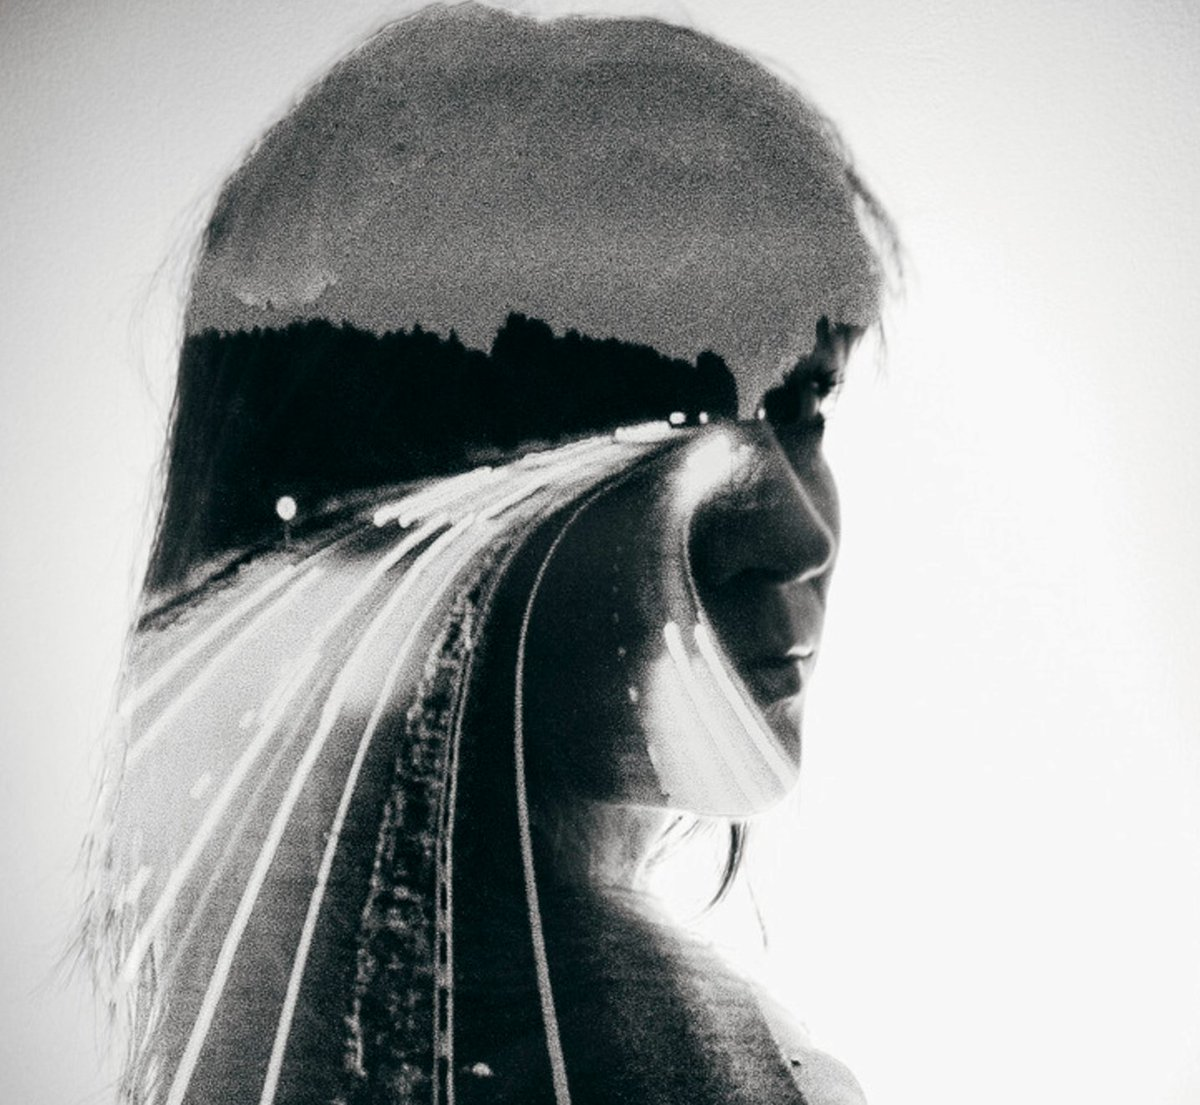 If you take double exposure photos, add 'em here: https://t.co/tSgyikvmRN https://t.co/Ghx9arEliG